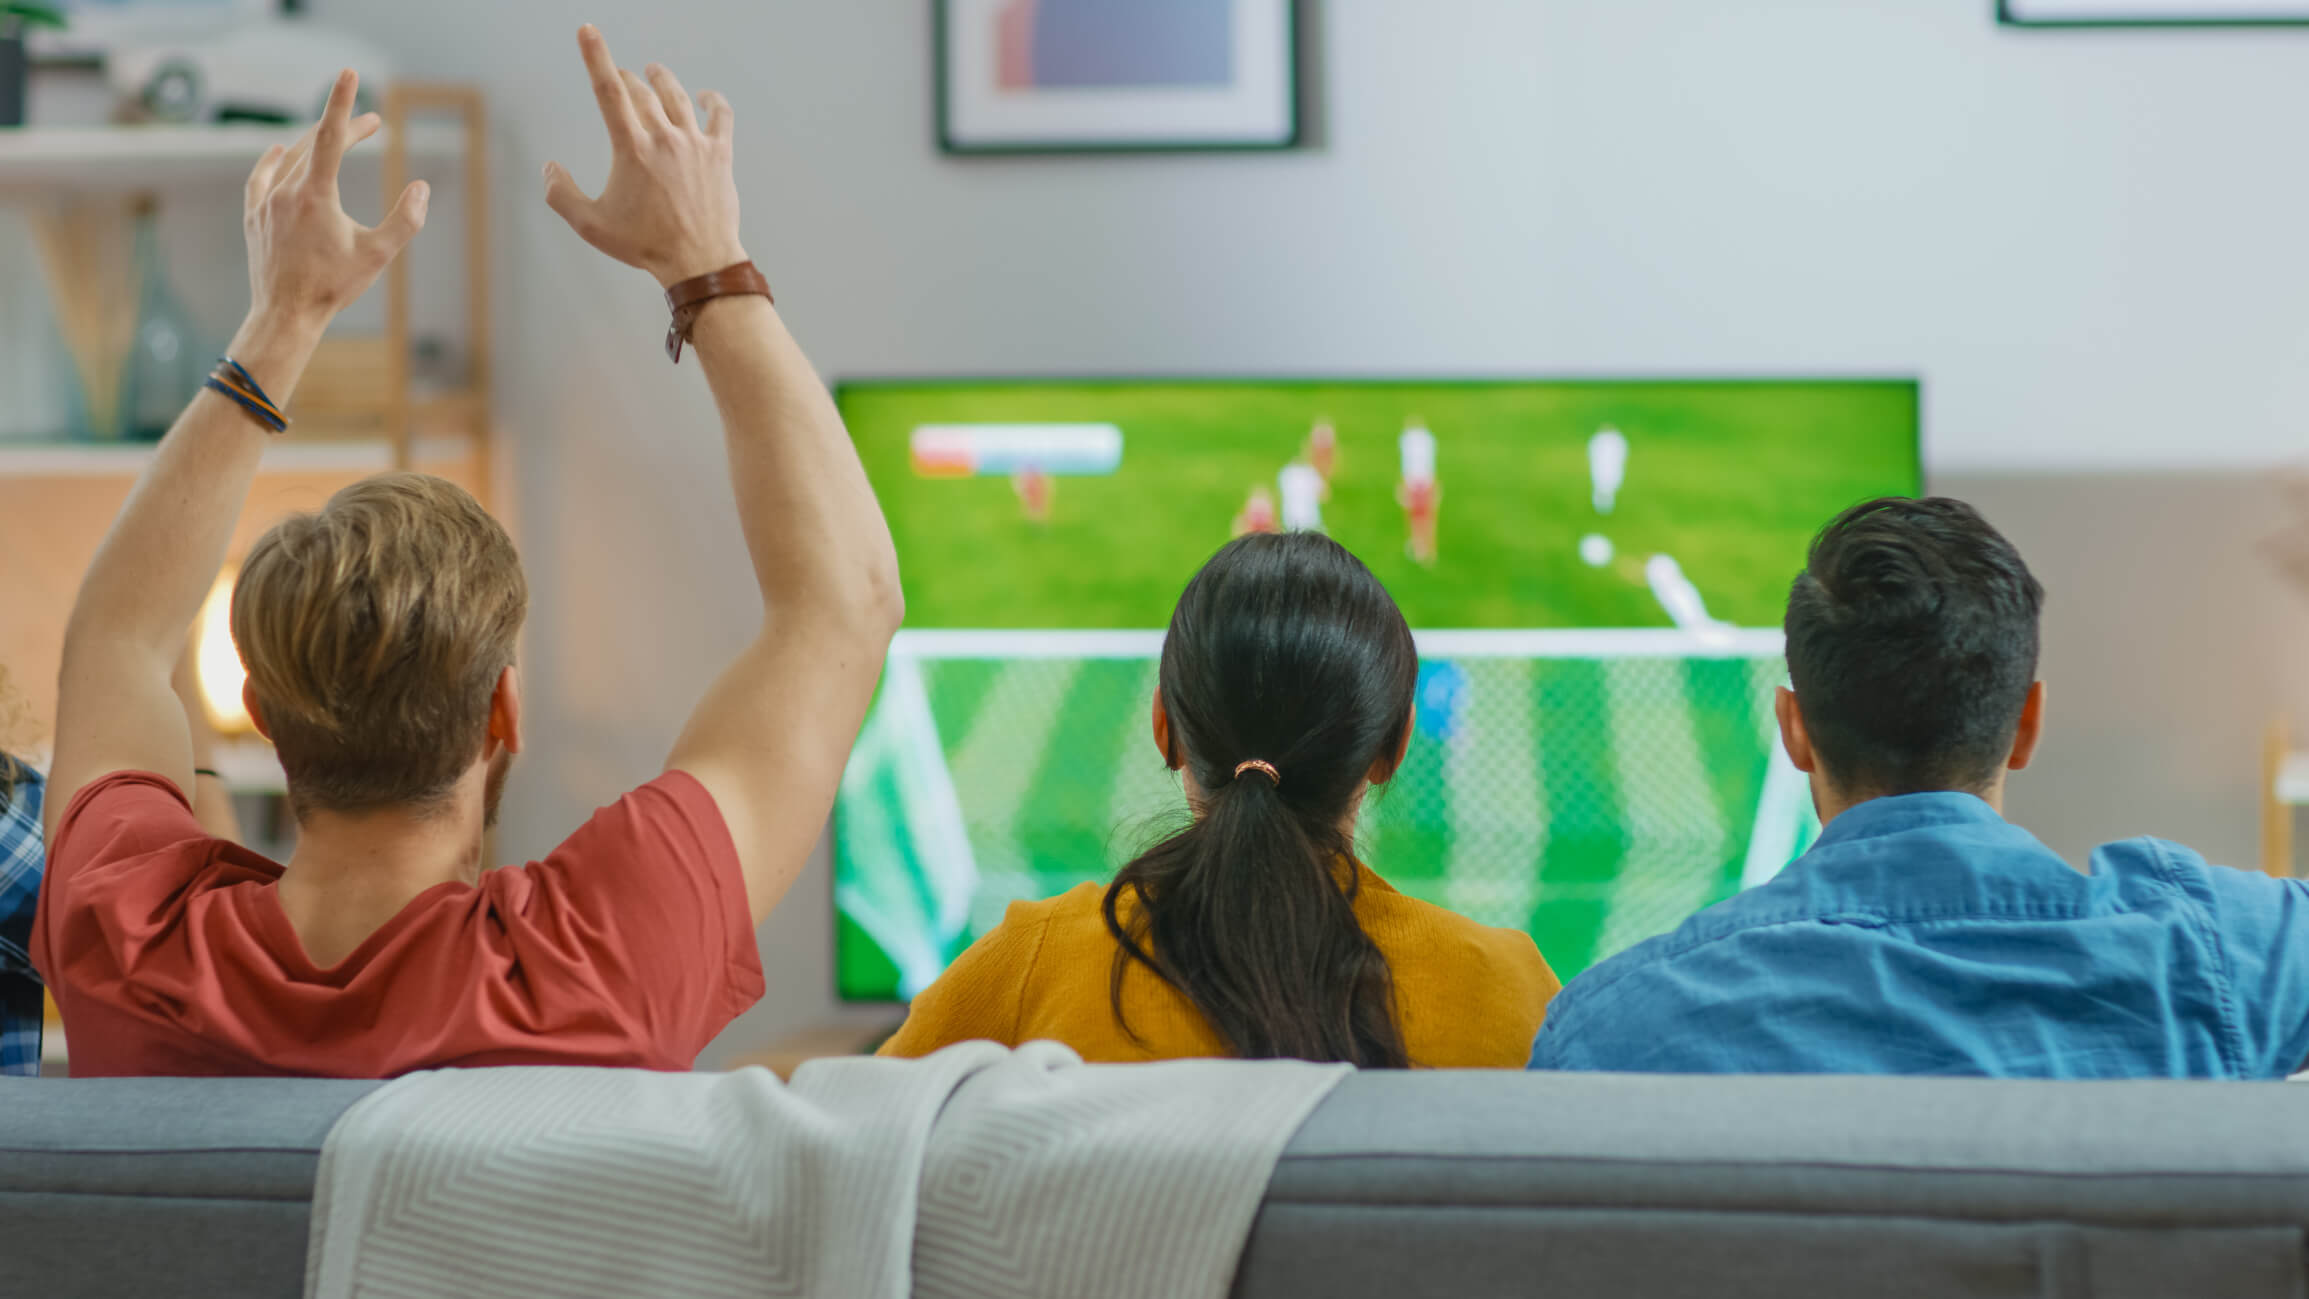 Three friends sitting on couch watching soccer game while one friend is cheering